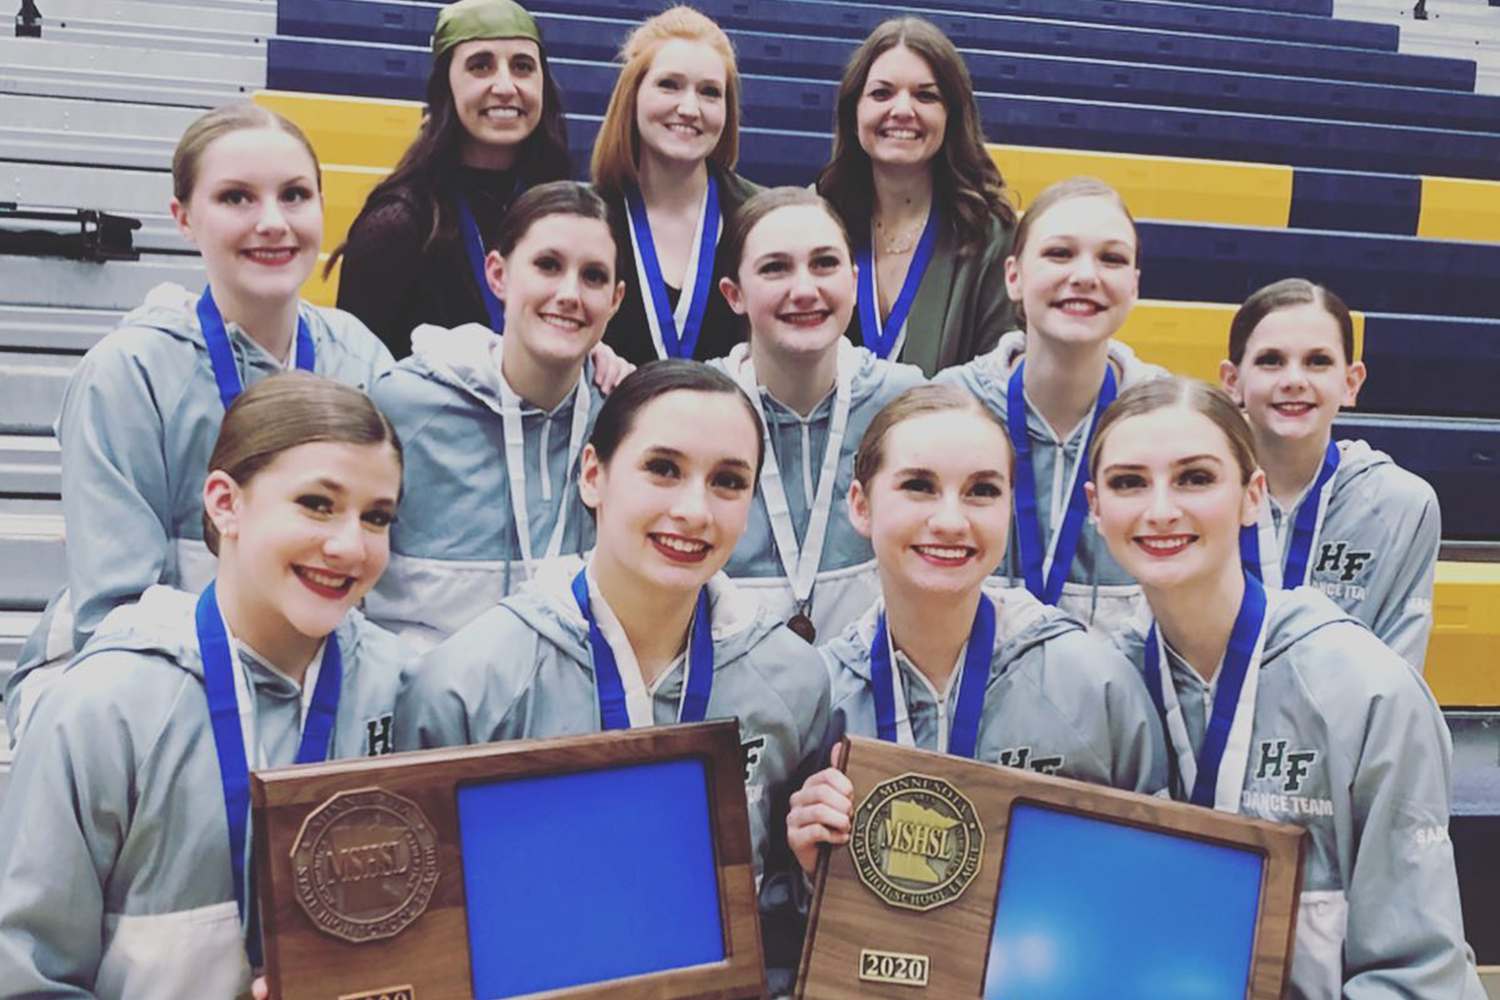 Holy Family Dance Team Heads to State! Featured Image.